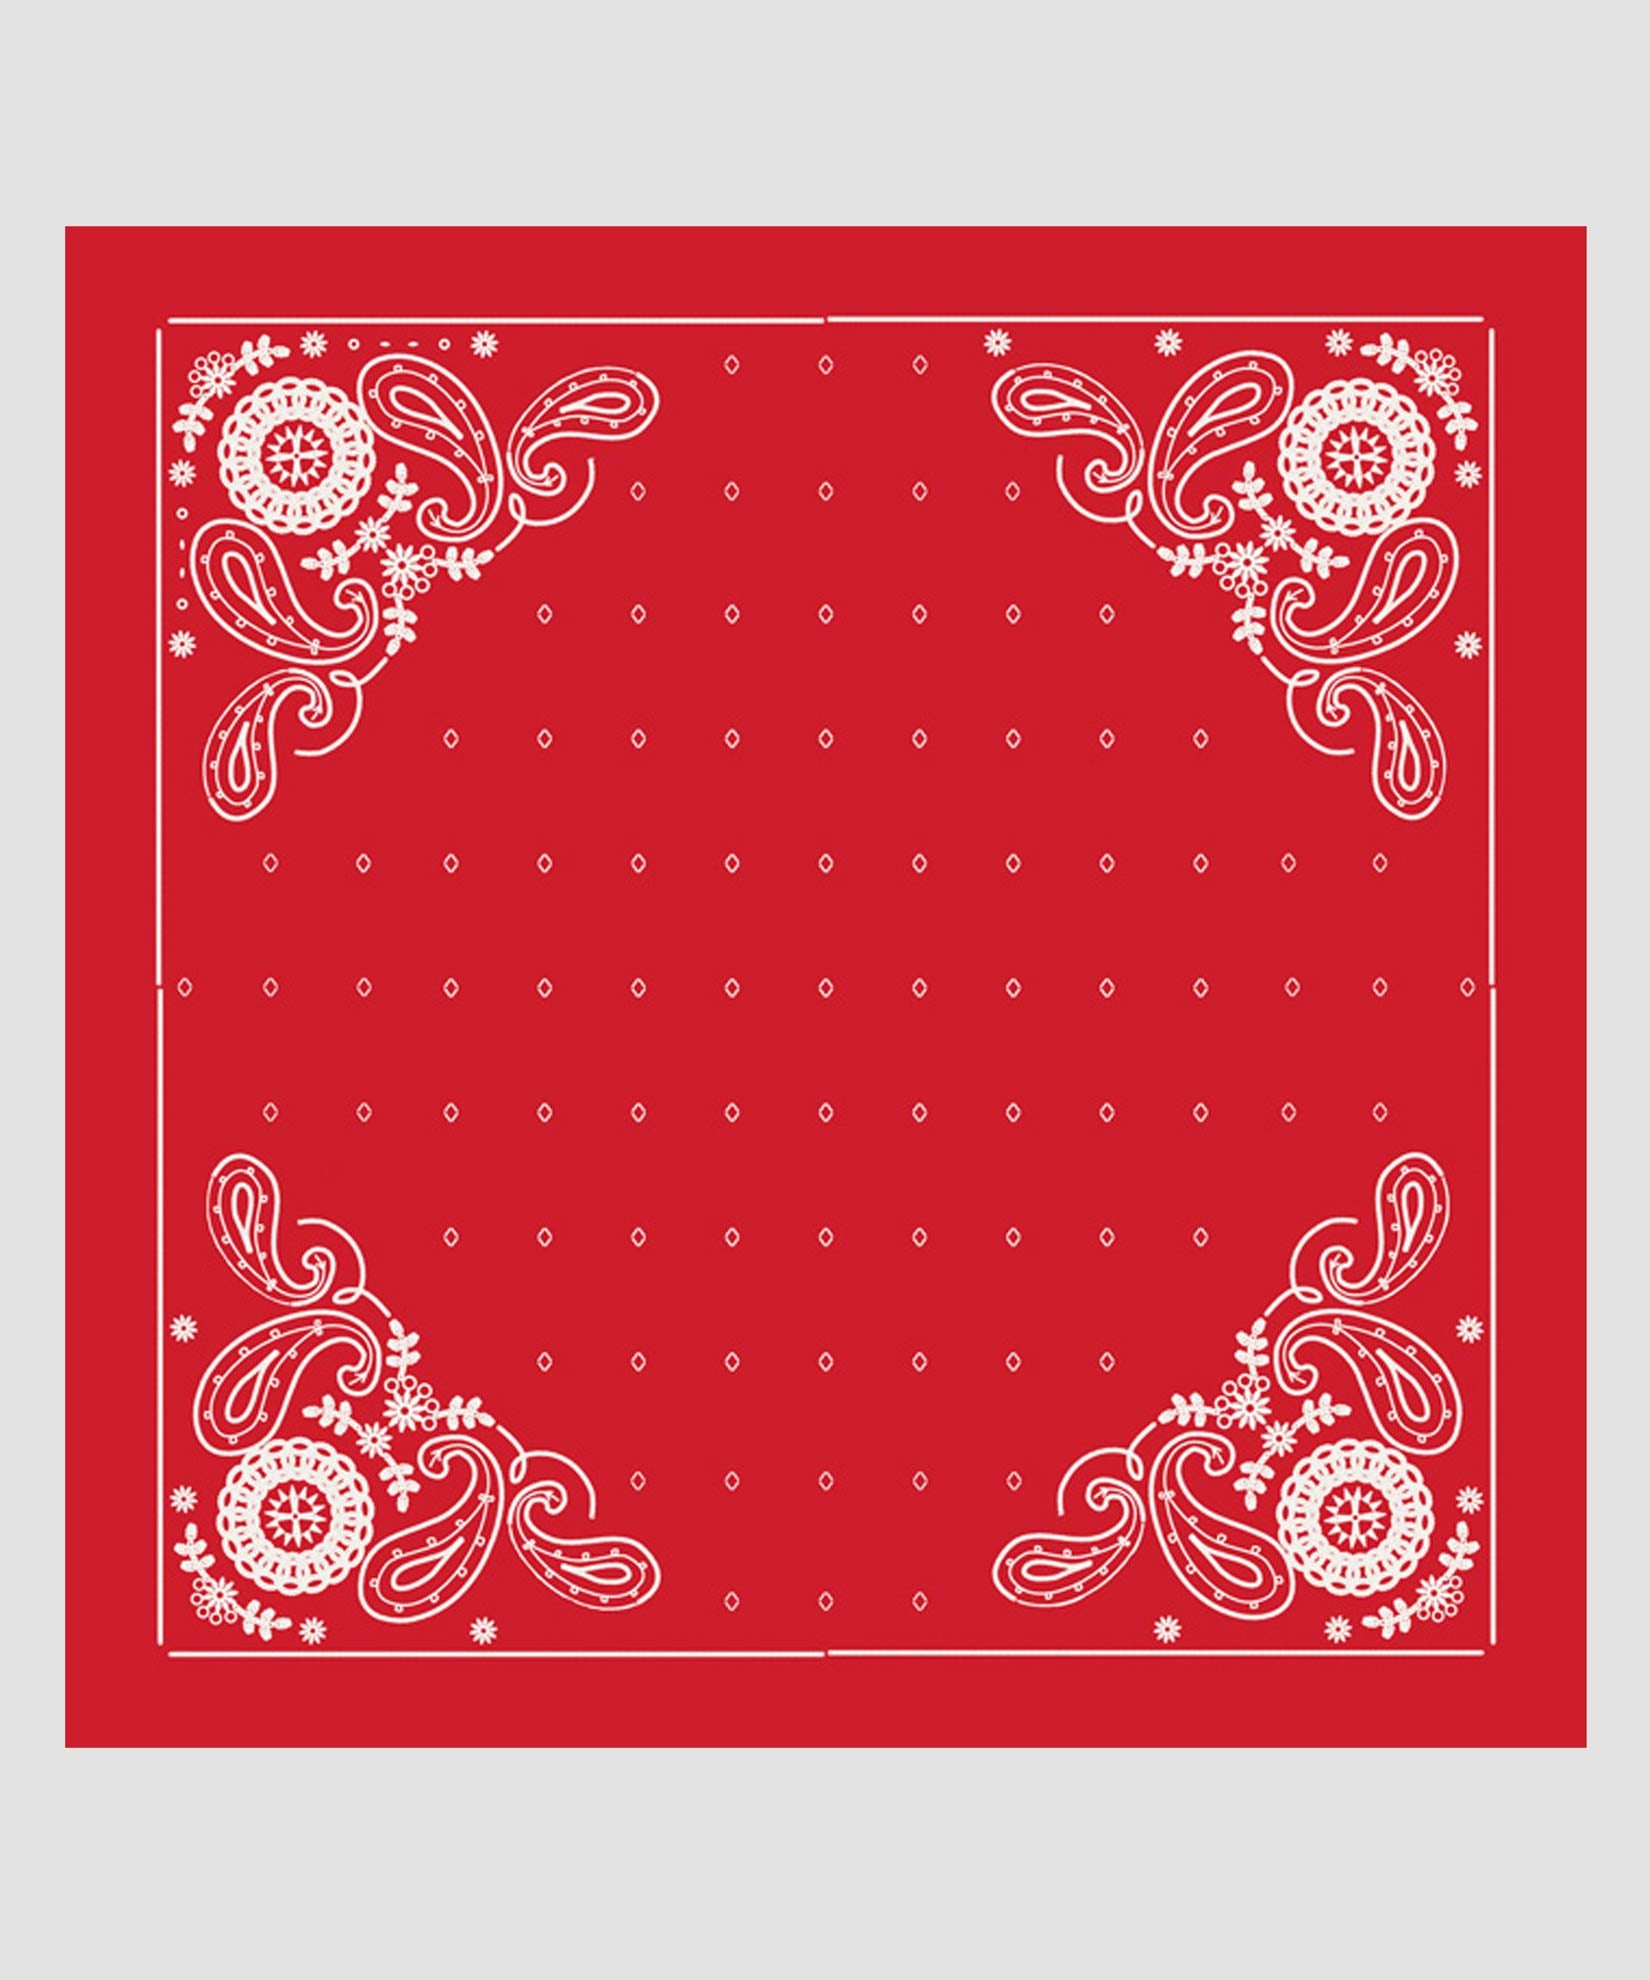 Resort Red - Embroidered Bandana